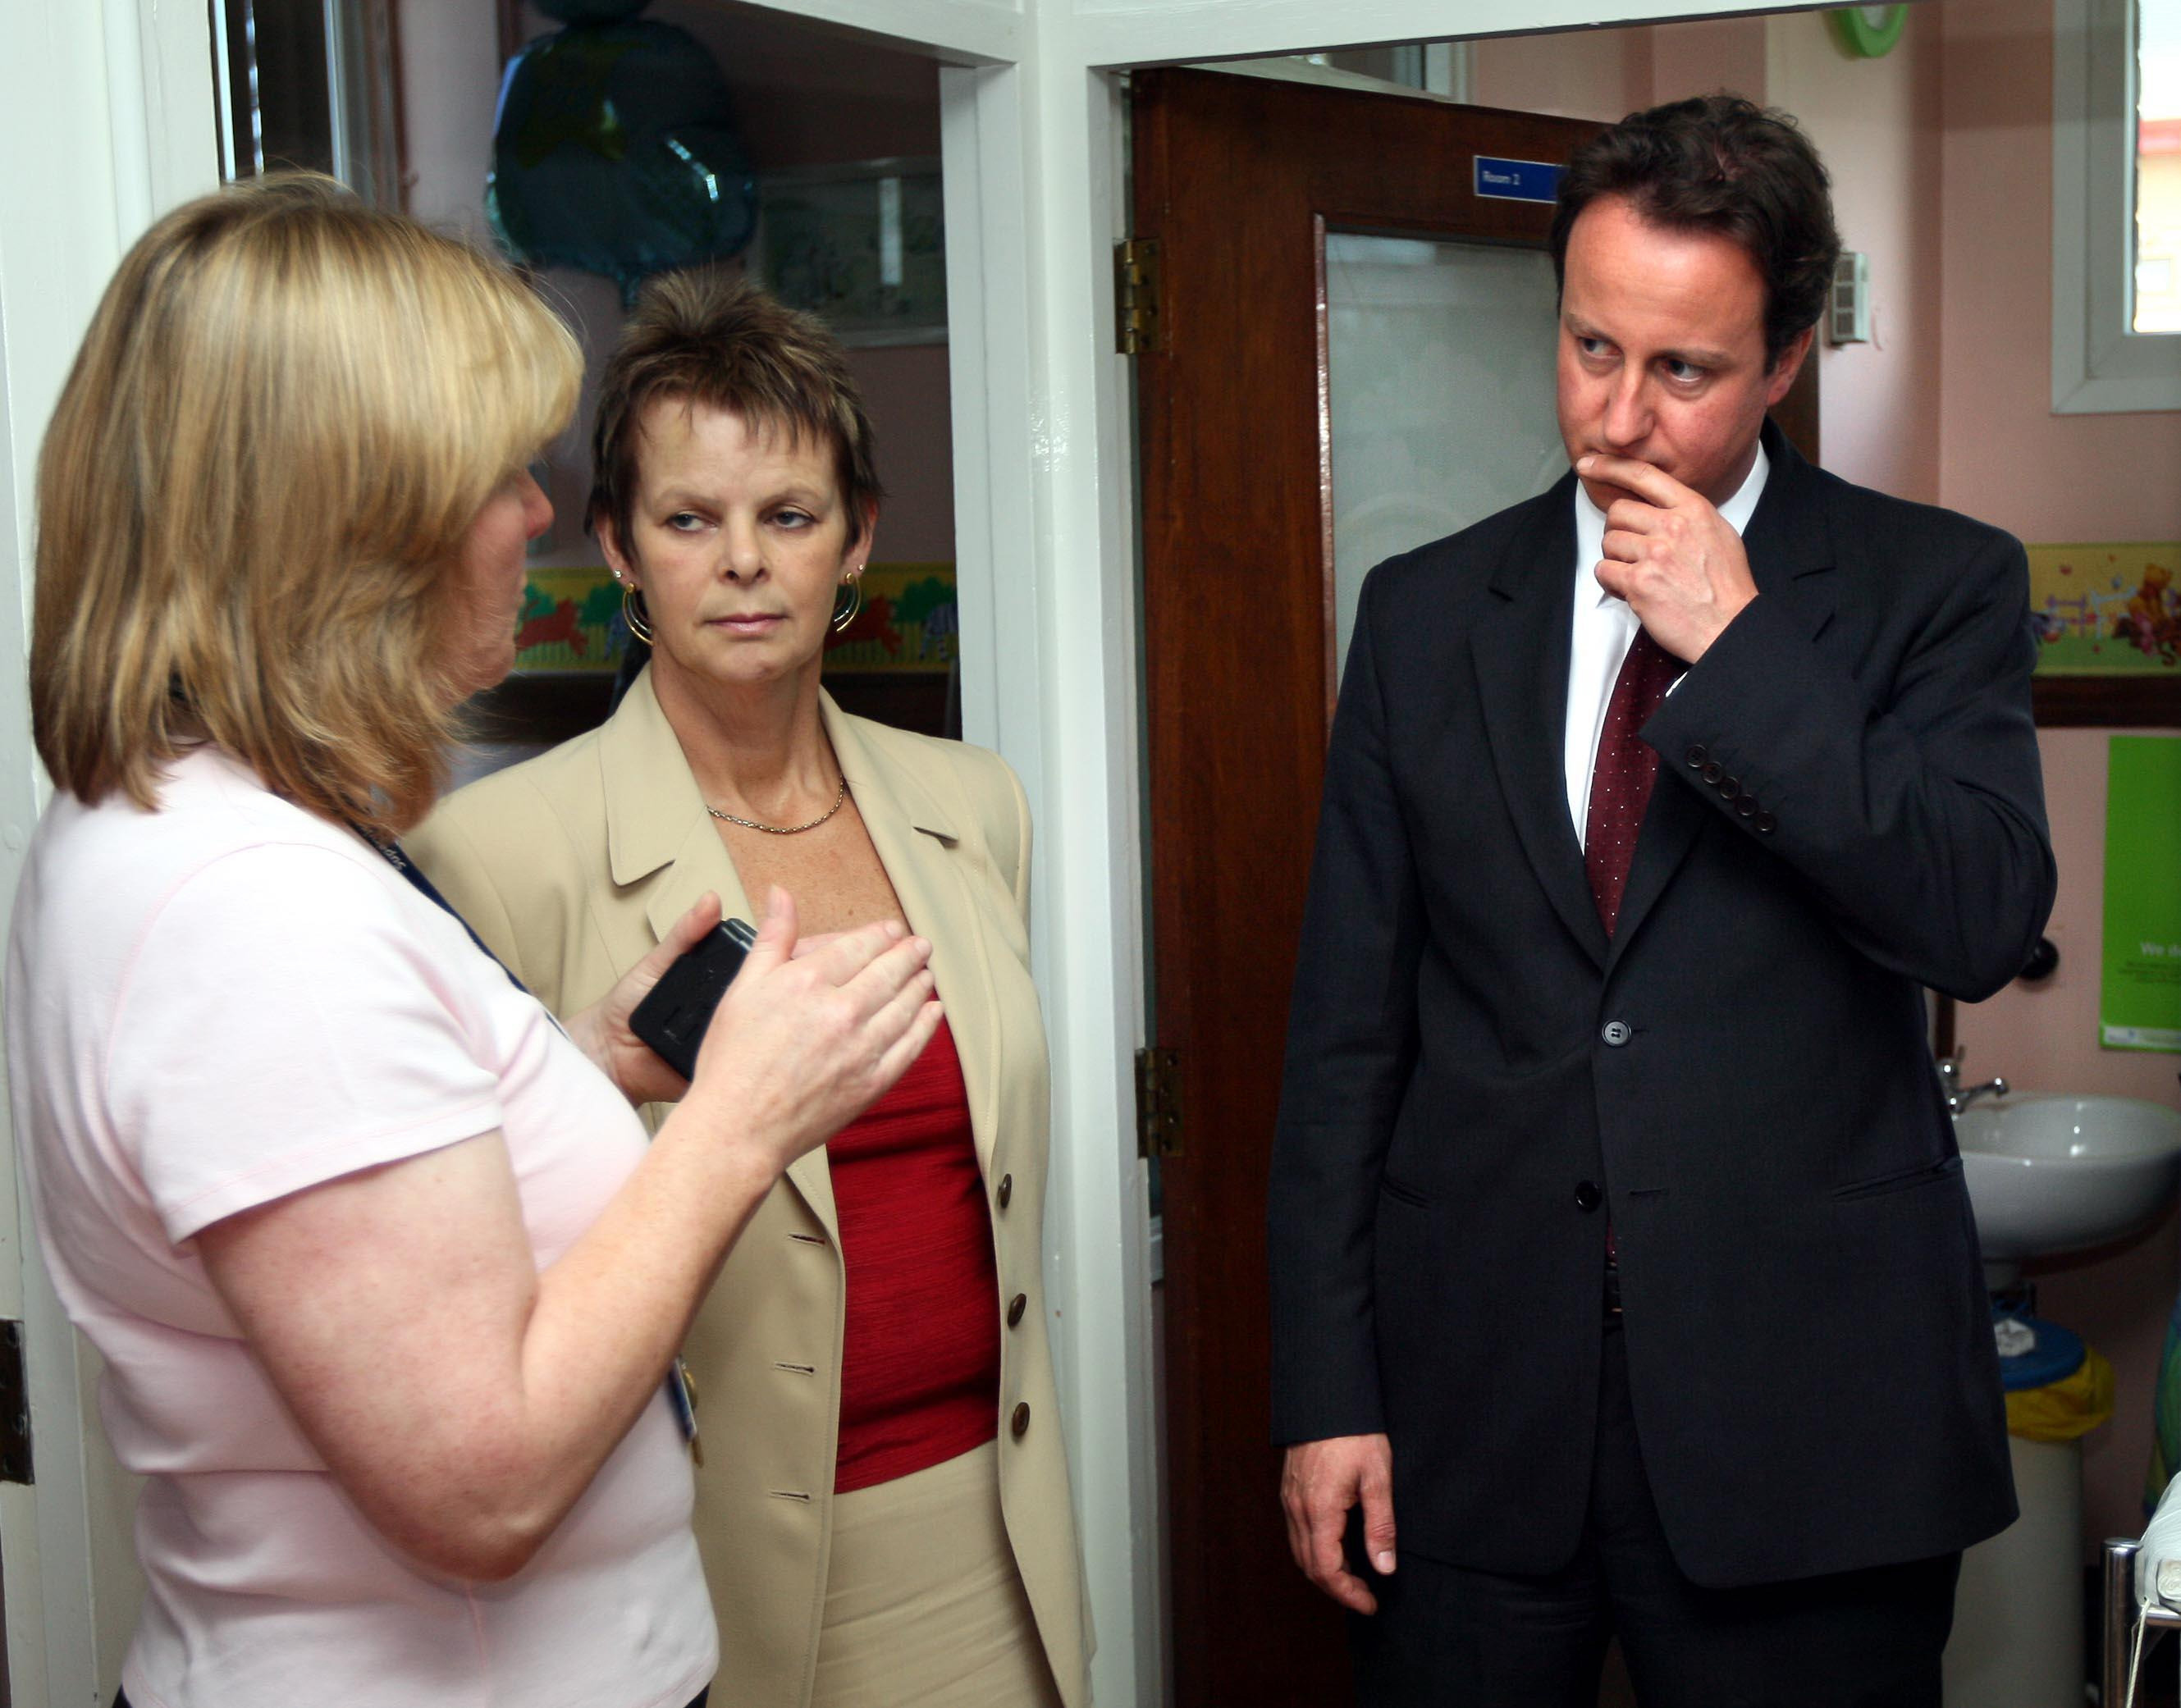 Former PM David Cameron and Anne Milton, as Shadow Health spokesperson, visit the maternity department of the Horton Hospital in Banbury